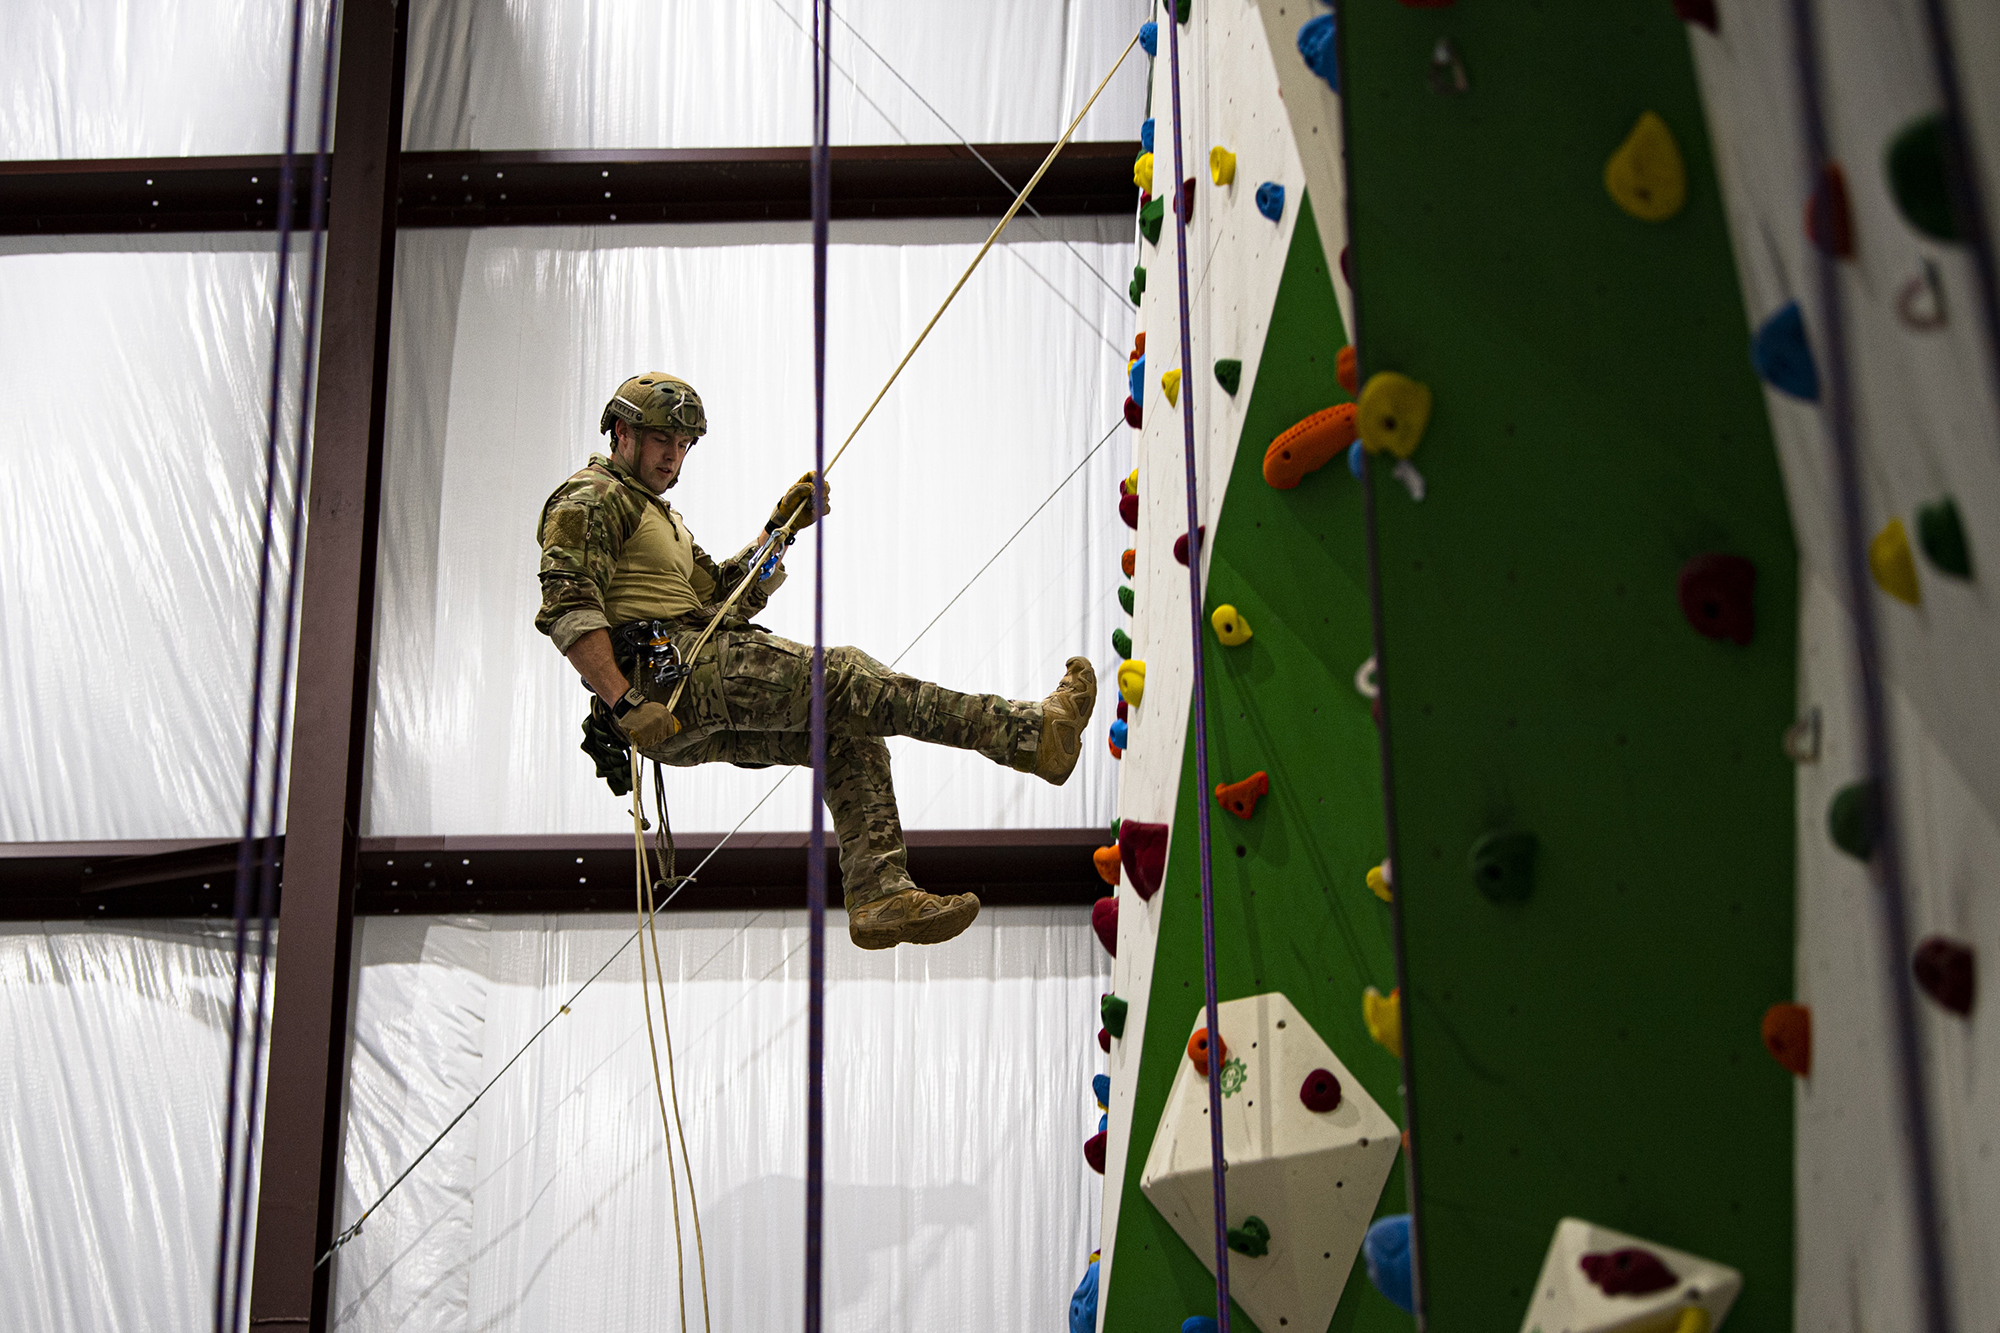 A pararescueman assigned to the 38th Rescue Squadron rappels down a climbing wall during high angle rescue training, April 28, 2020, at Moody Air Force Base, Ga. (Airman 1st Class Taryn Butler/Air Force)